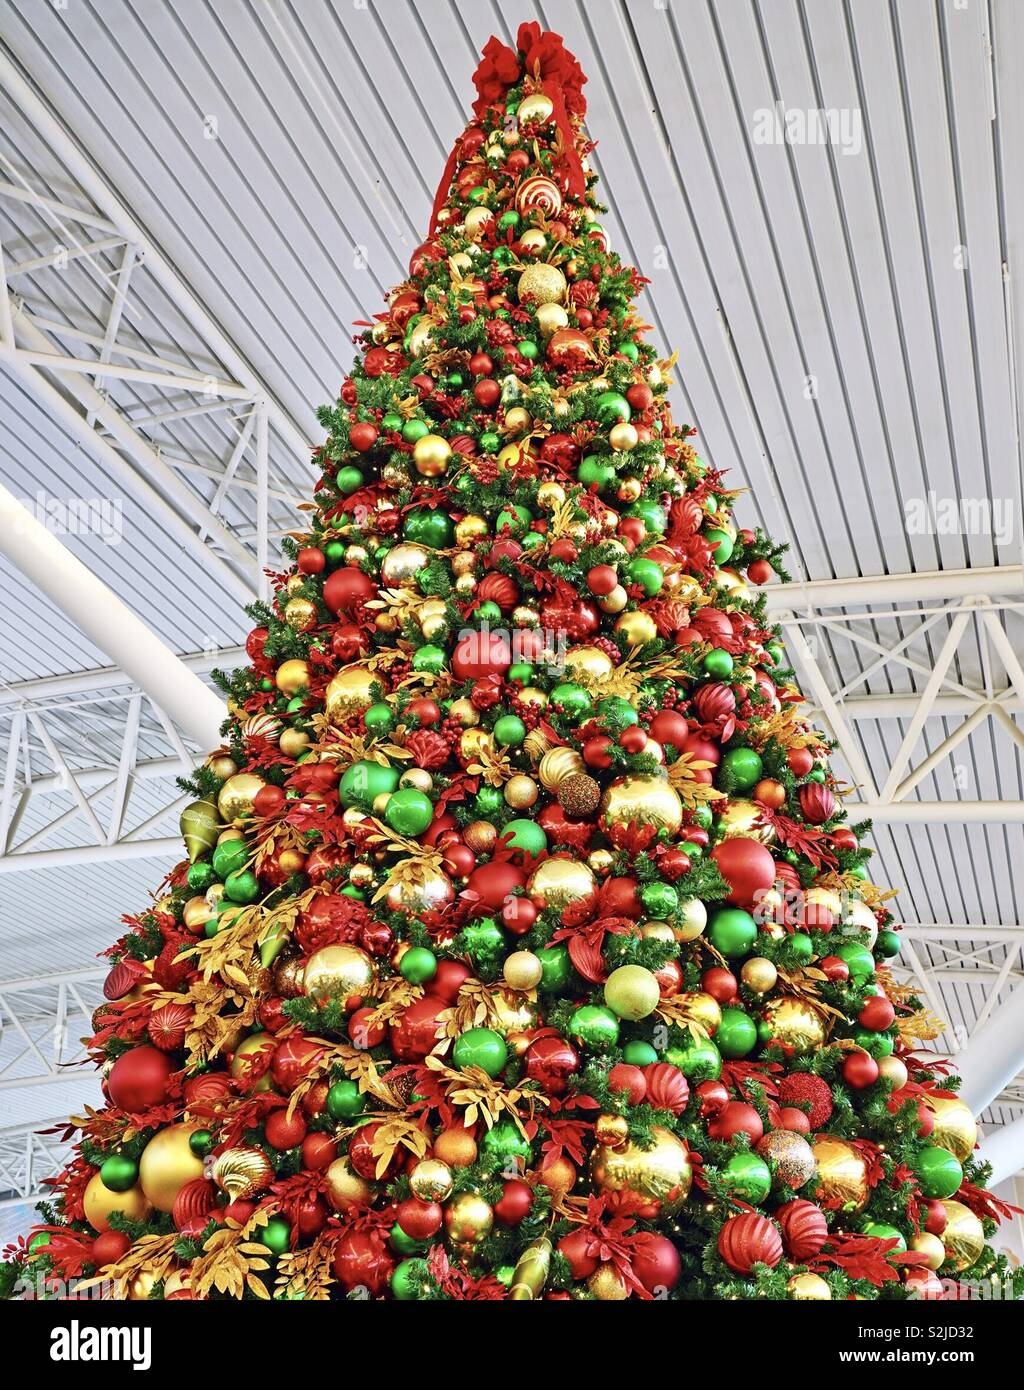 A Giant Christmas Tree Decorated With Red Green And Gold Holiday Ornaments Stock Photo Alamy